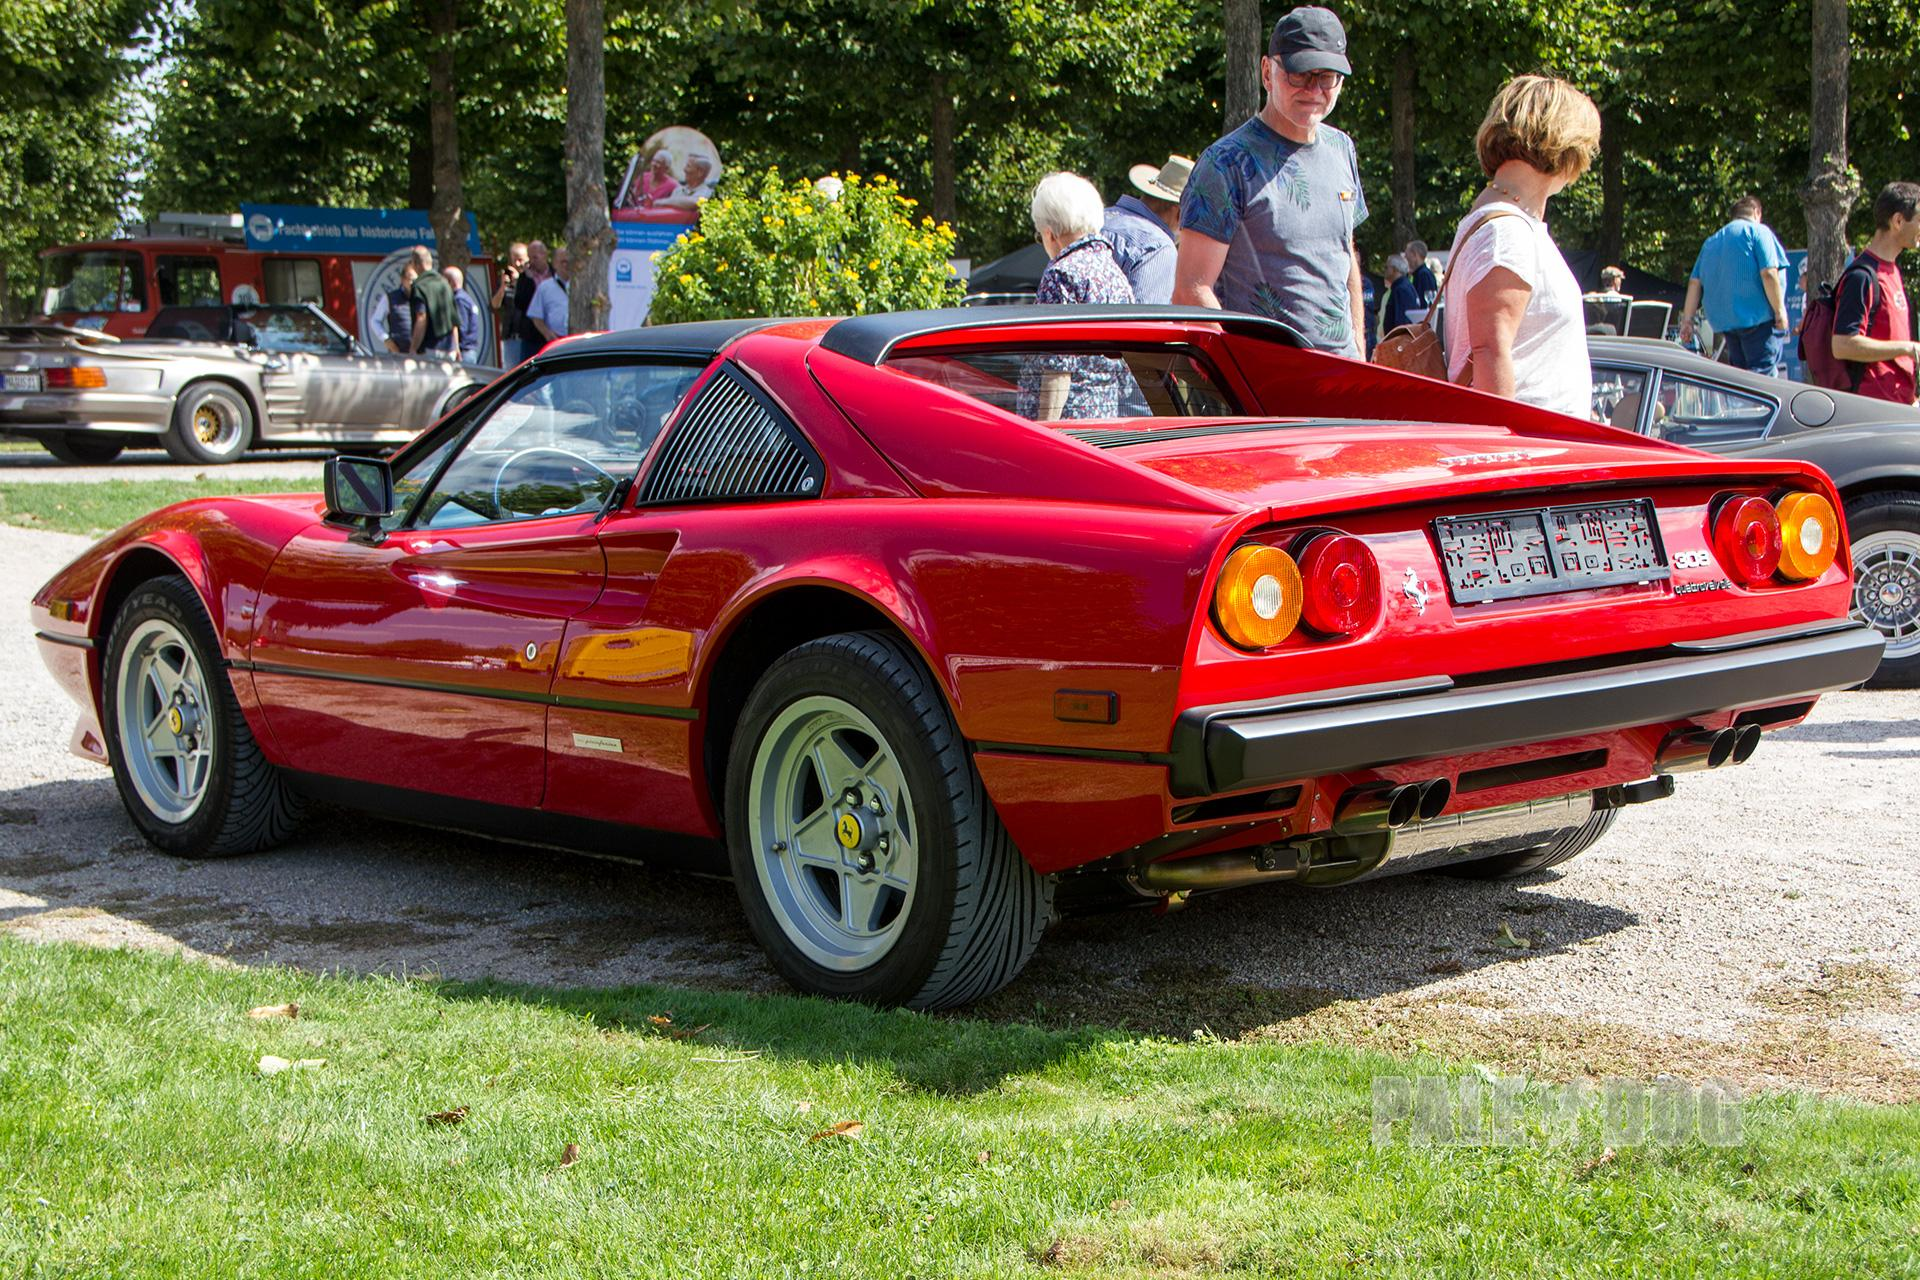 1984 Ferrari 308 Gts Quattrovalvole Rear View 1980s Paledog Photo Collection